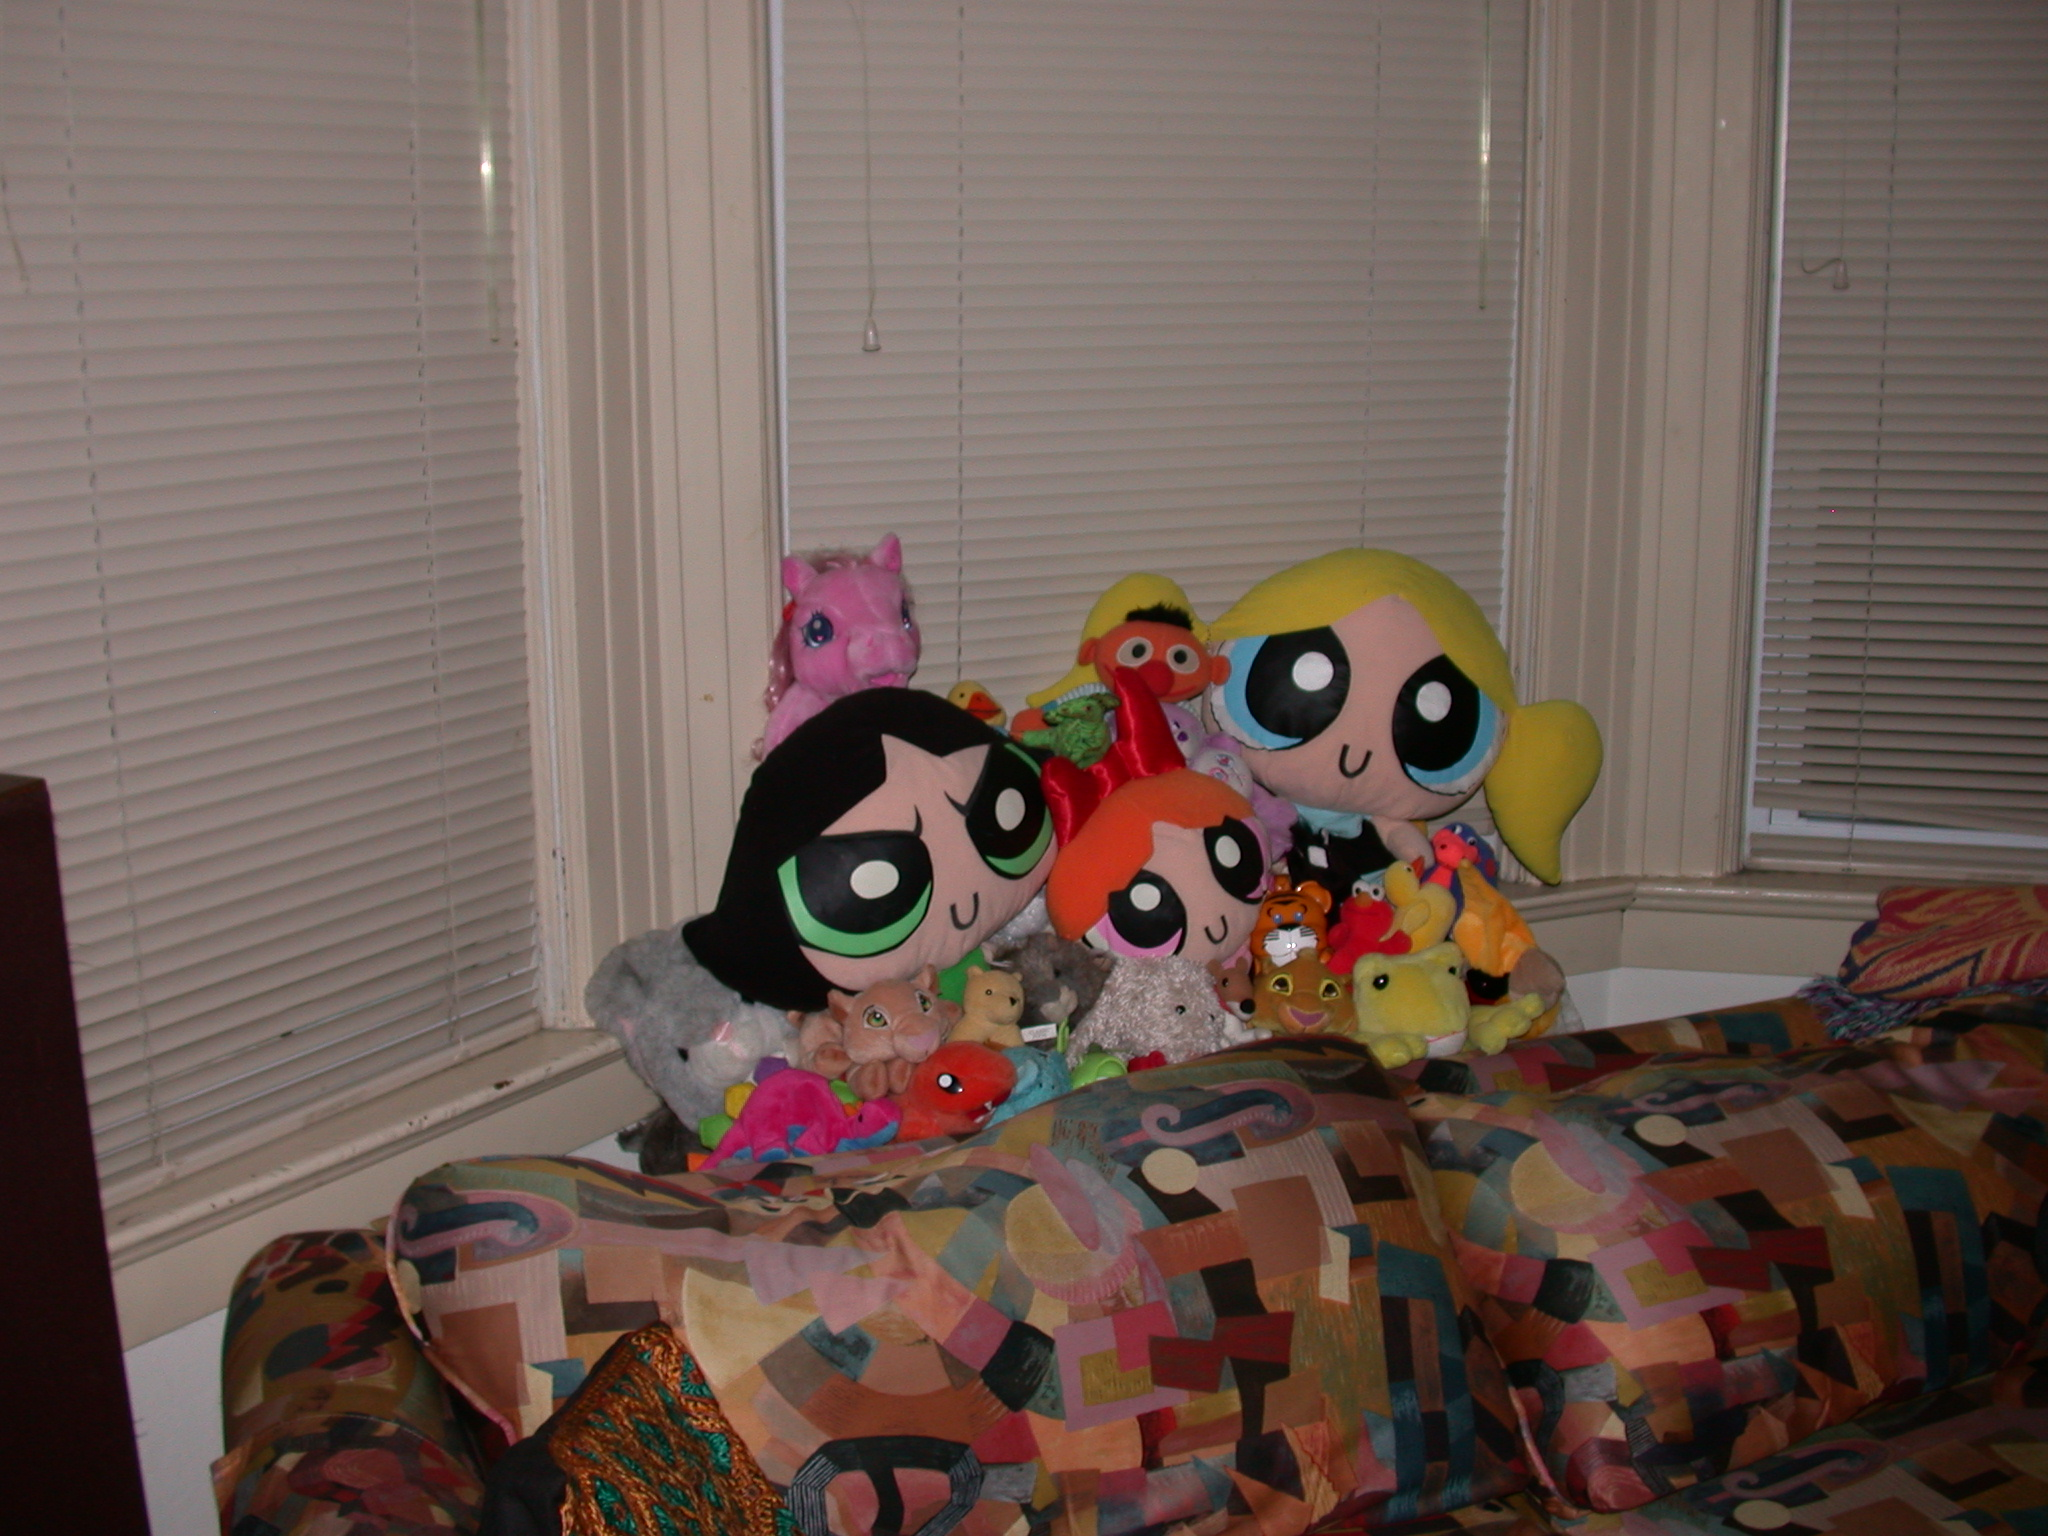 Power Puff Girls and Their Posse Alarmed by Tenor of Party and Dubious Character of Guests